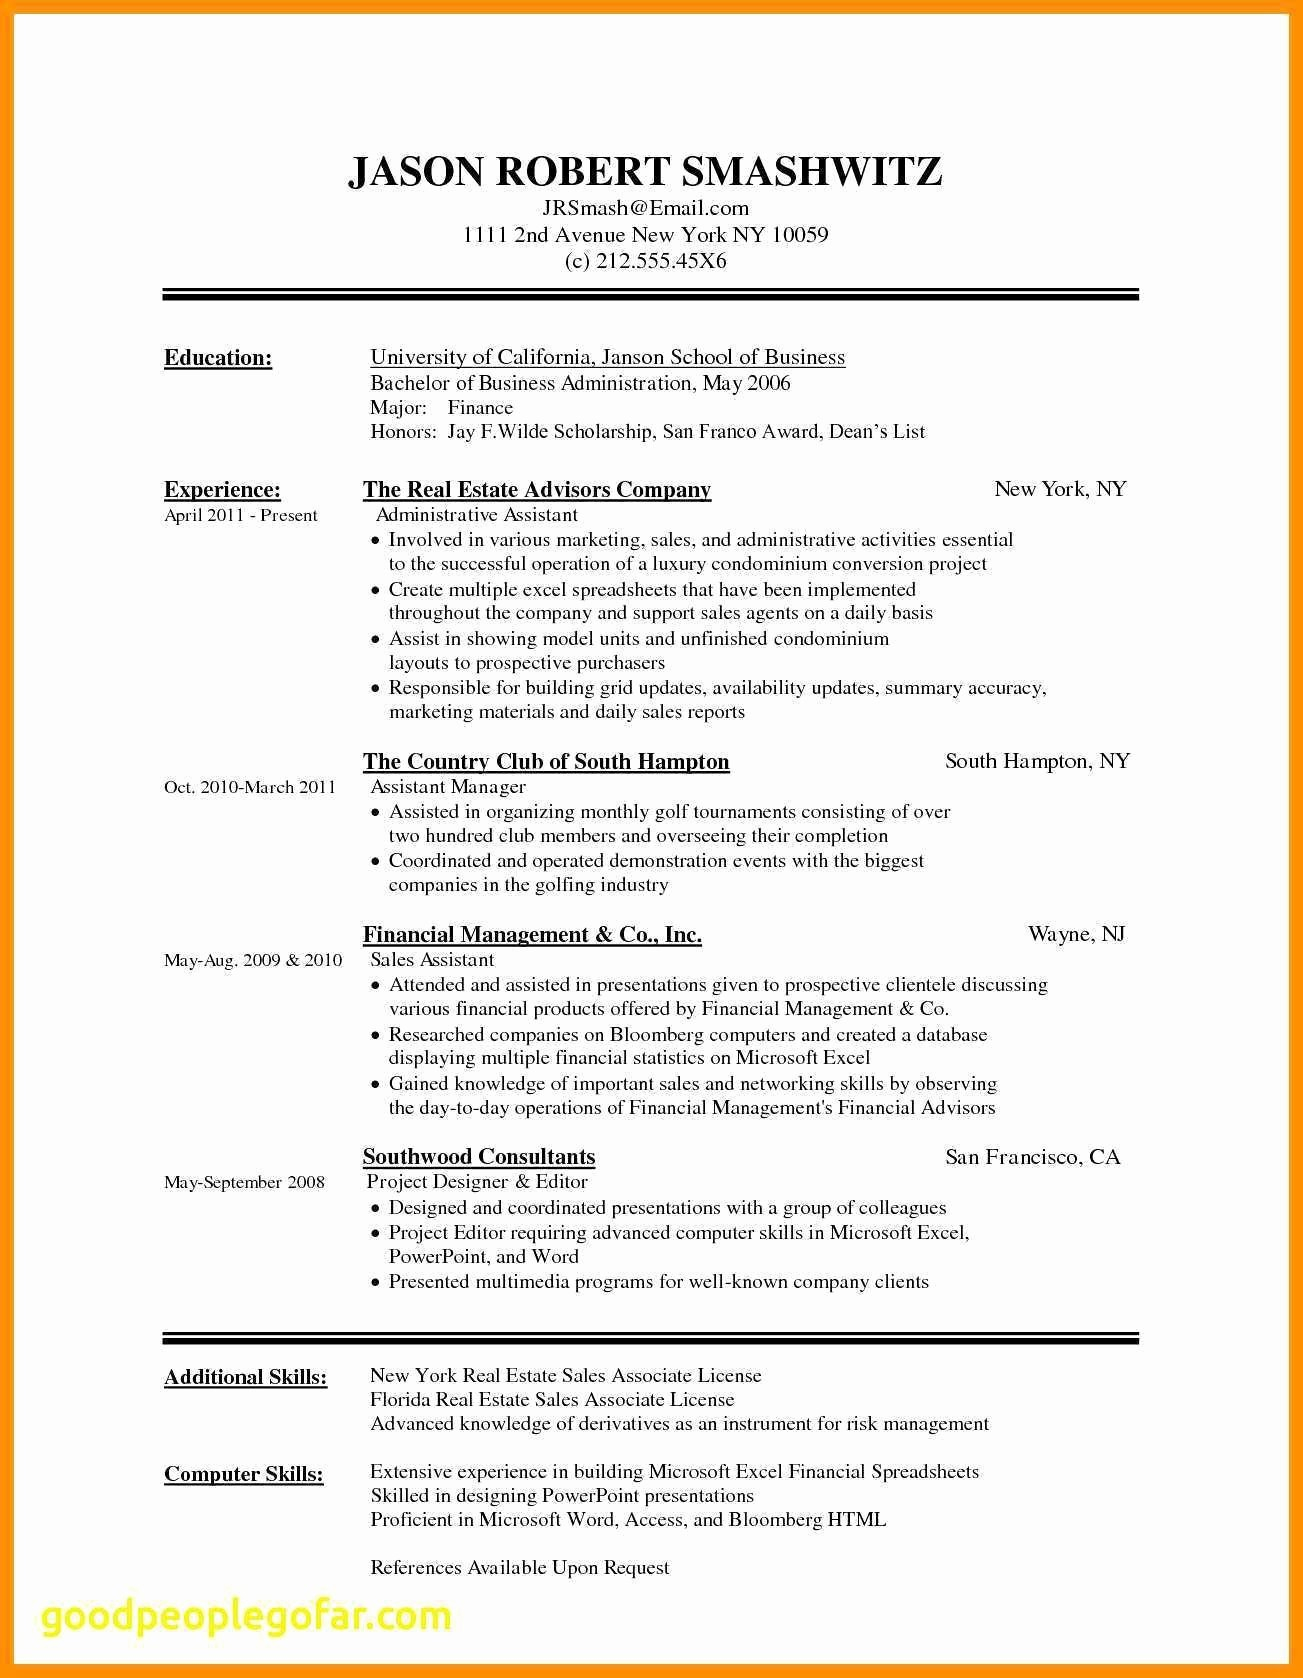 Free Ms Word Resume Templates - 16 Fresh Free Resume Templates Microsoft